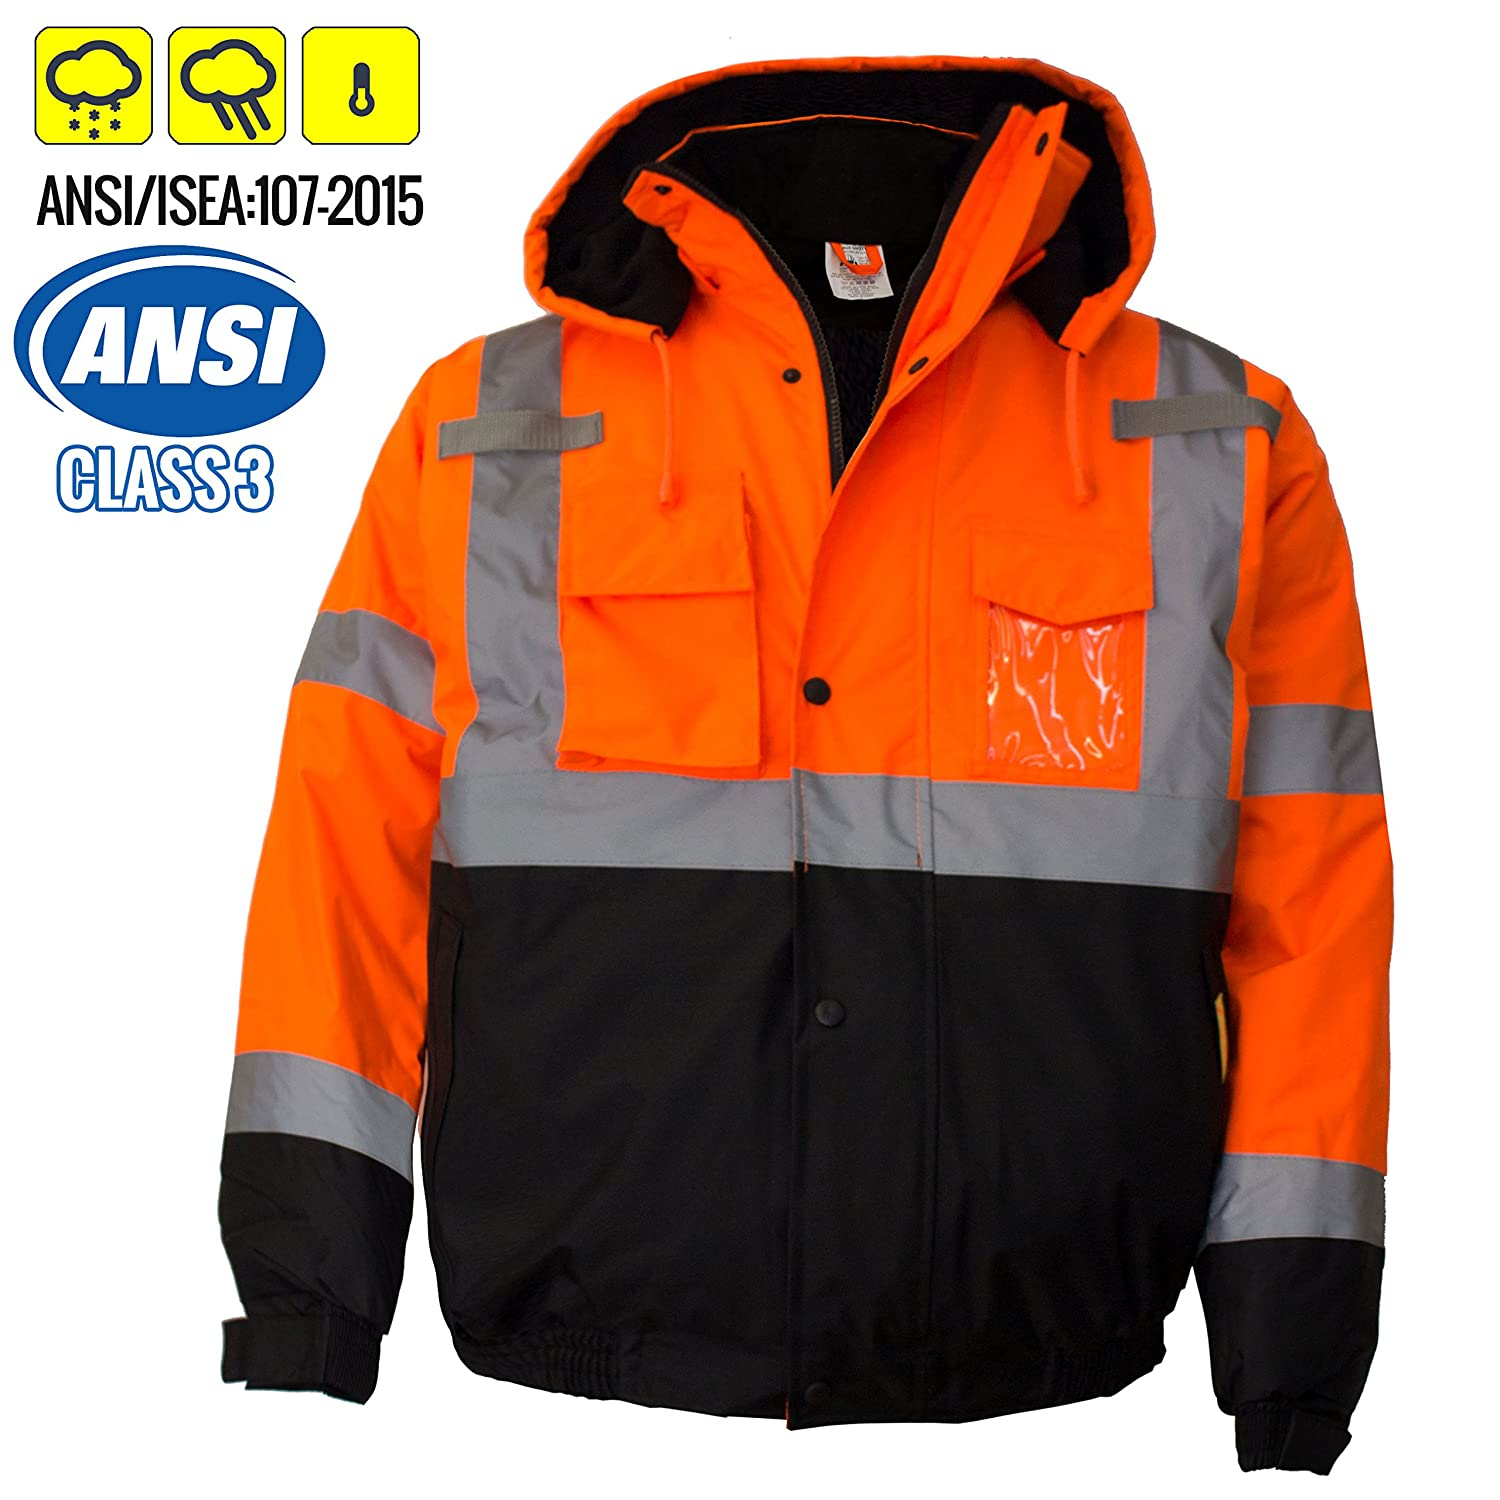 New York Hi-Viz Workwear WJ9012-M Men's ANSI Class 3 High Visibility Bomber Safety Jacket, Waterproof (Medium, Lime) RK Industries Group Inc